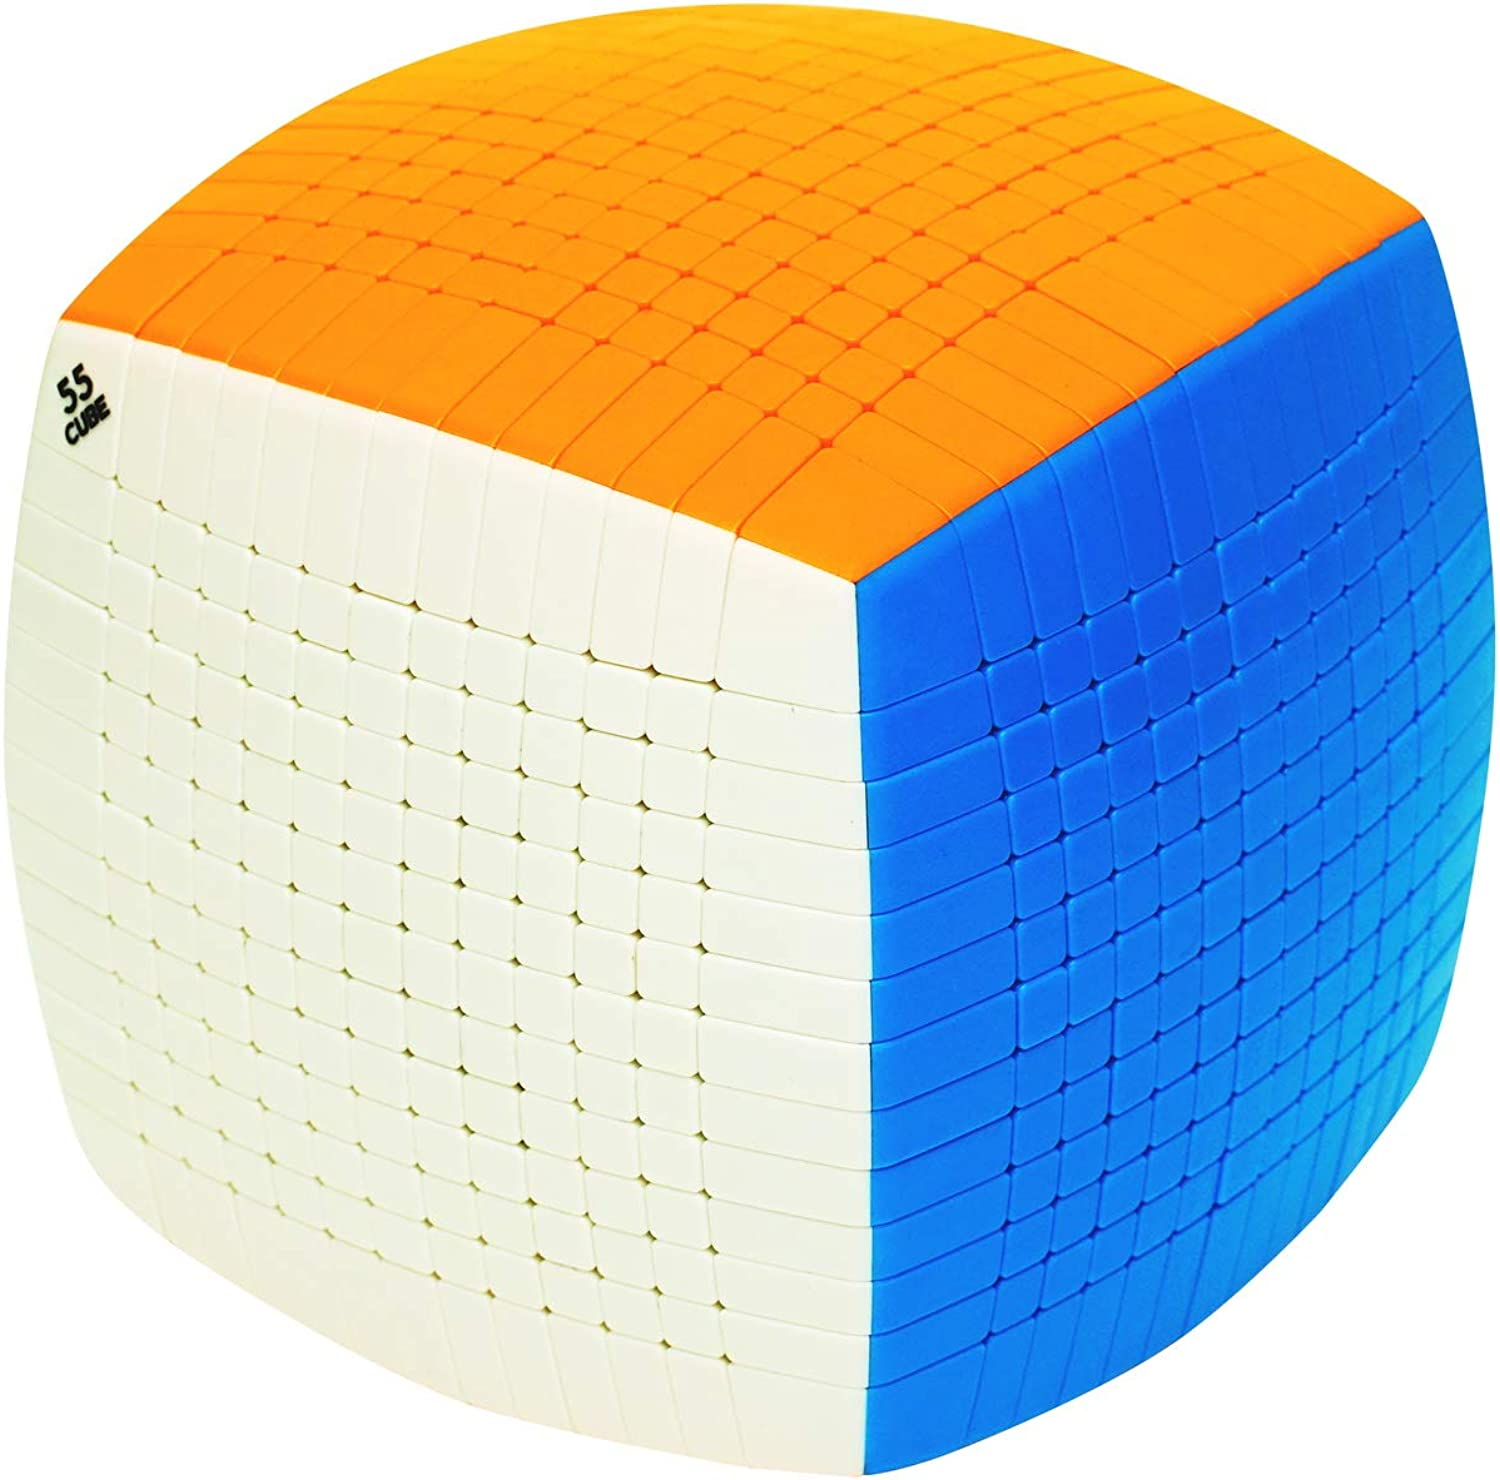 55cube 13x13 Cube Stickerless, New Structure  More Smoothly Than Original 13x13 Cube